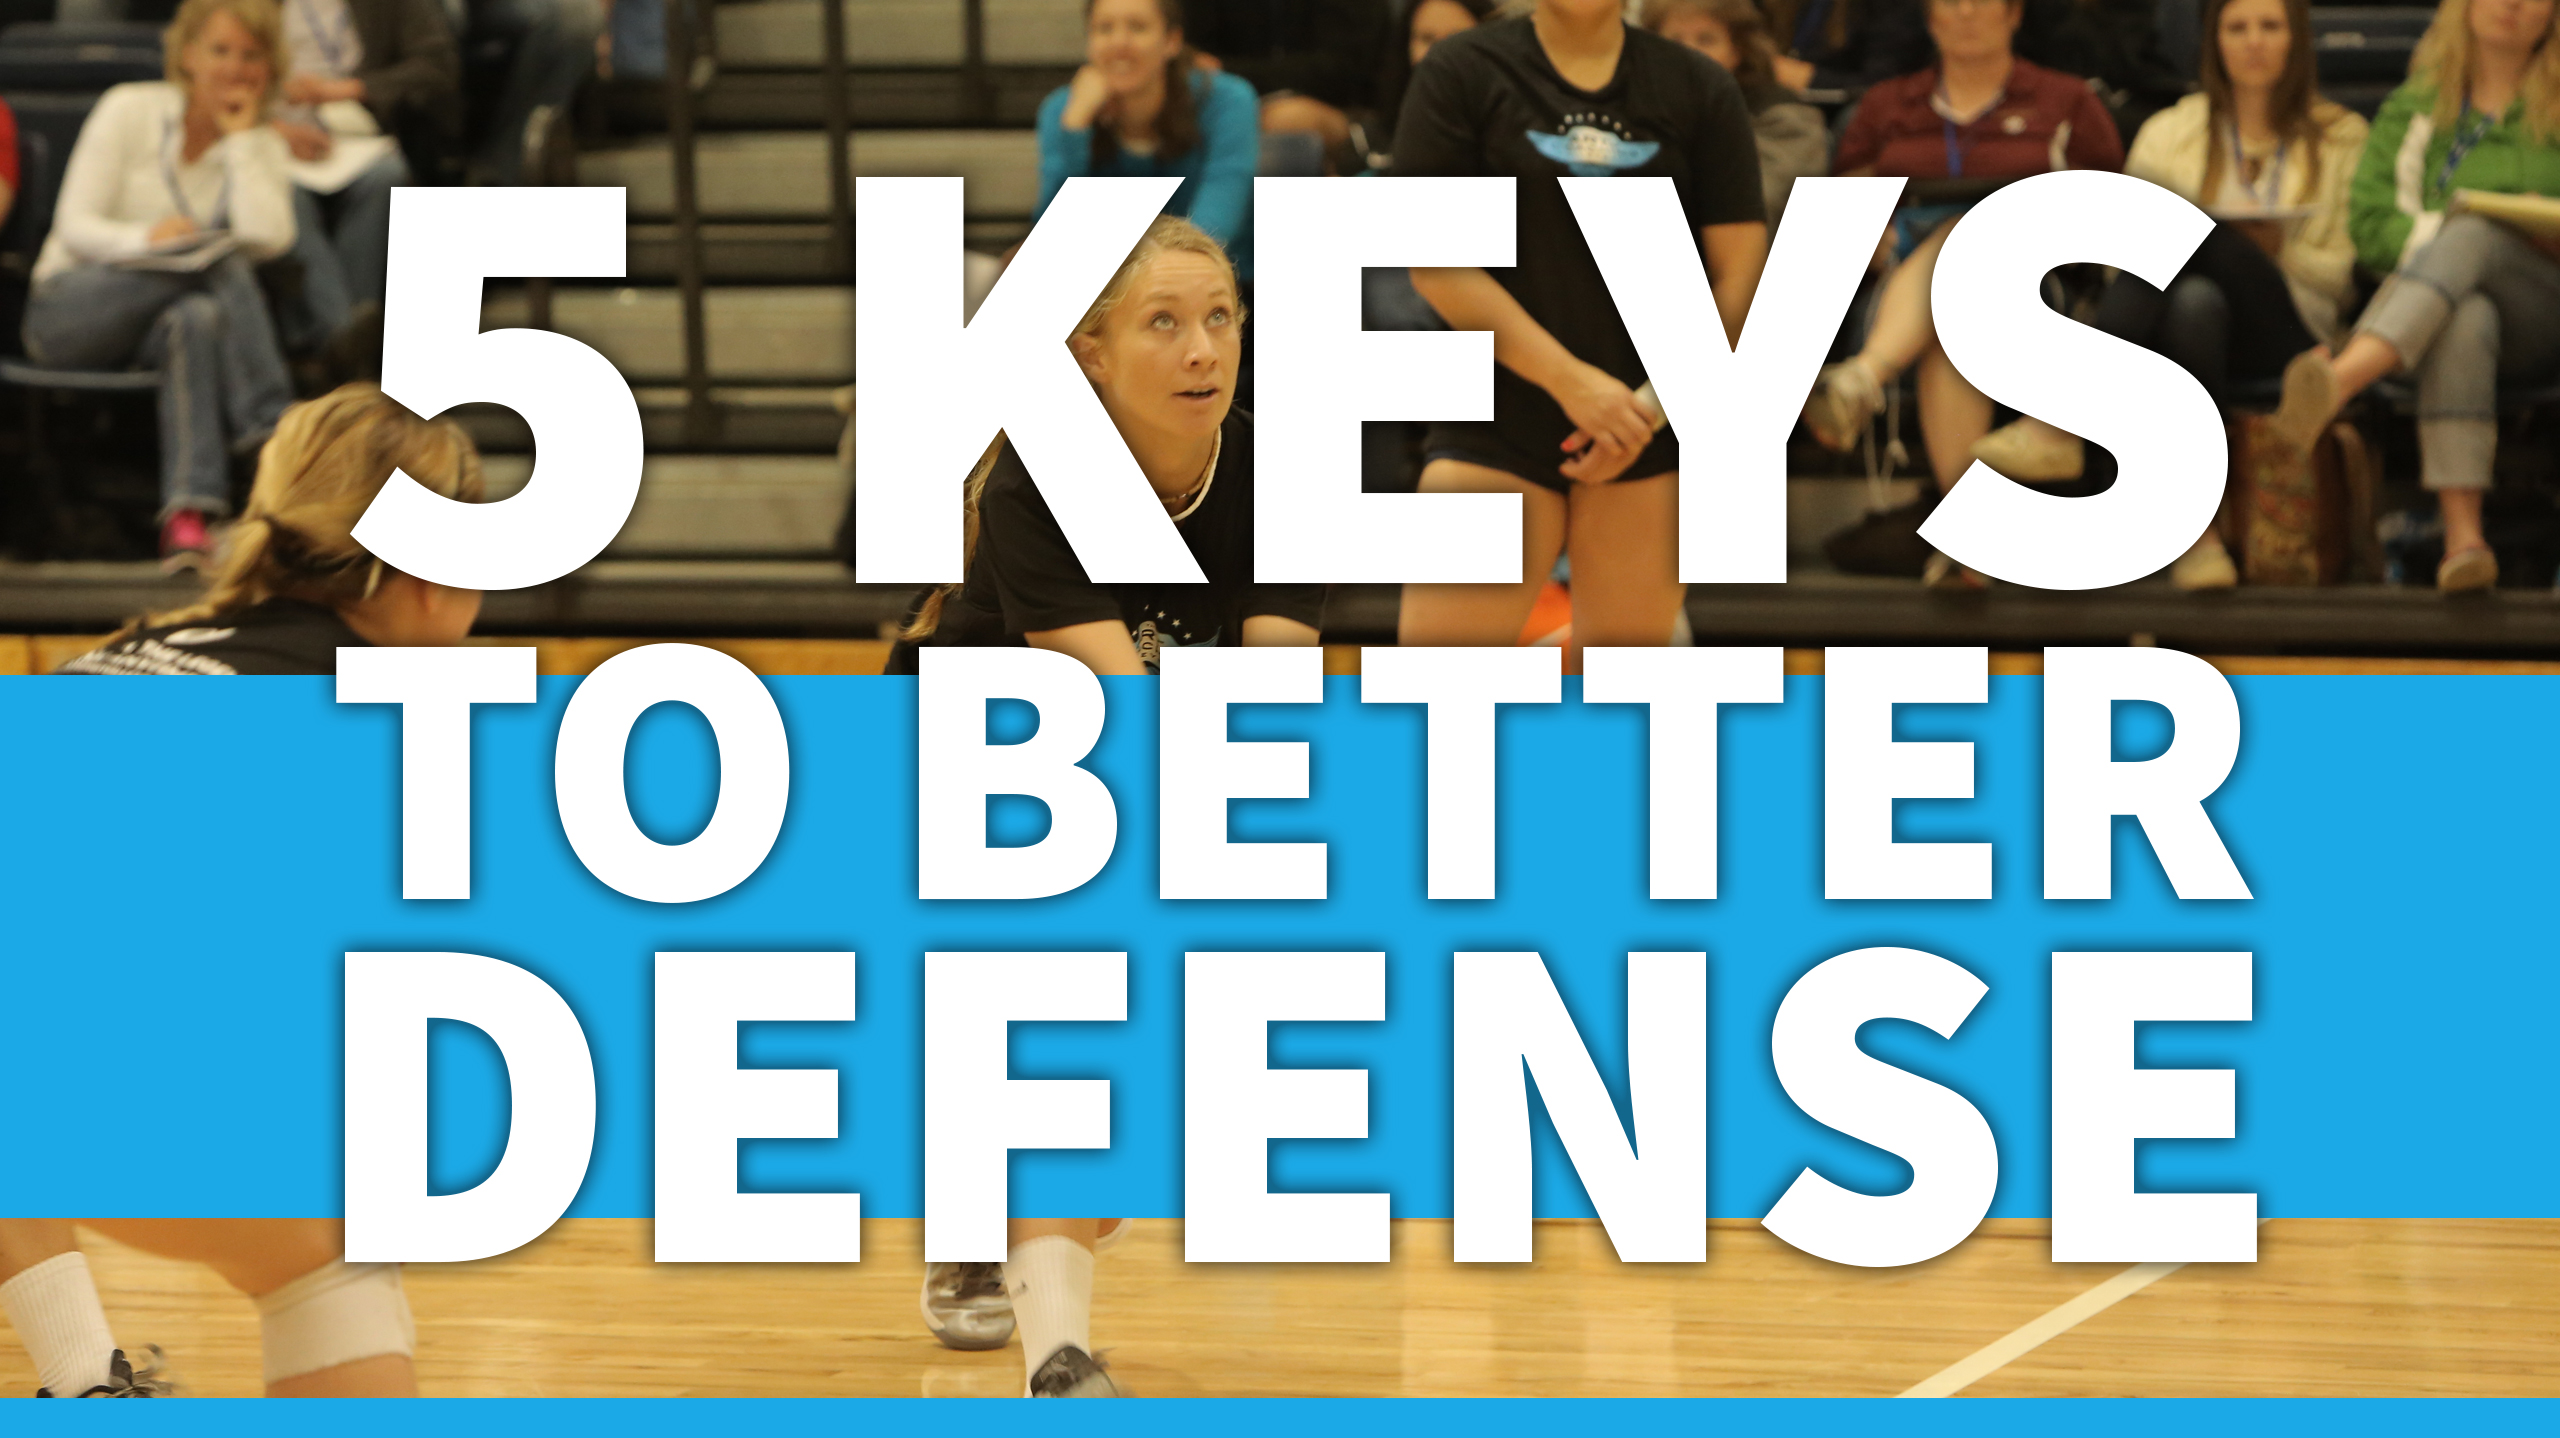 Httpwww Overlordsofchaos Comhtmlorigin Of The Word Jew Html: 5 Keys To Better Volleyball Defense